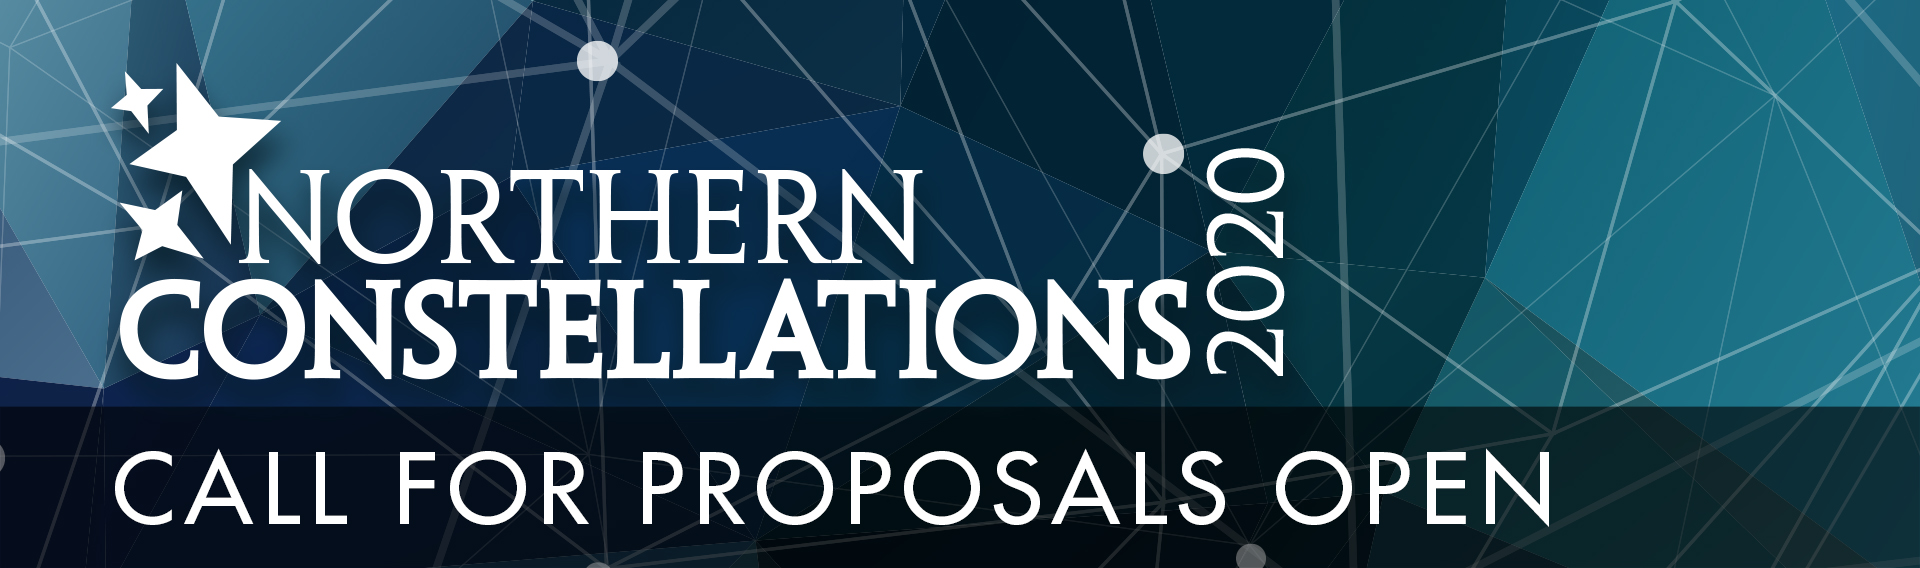 Northern Constellations 2020 Call for Proposals